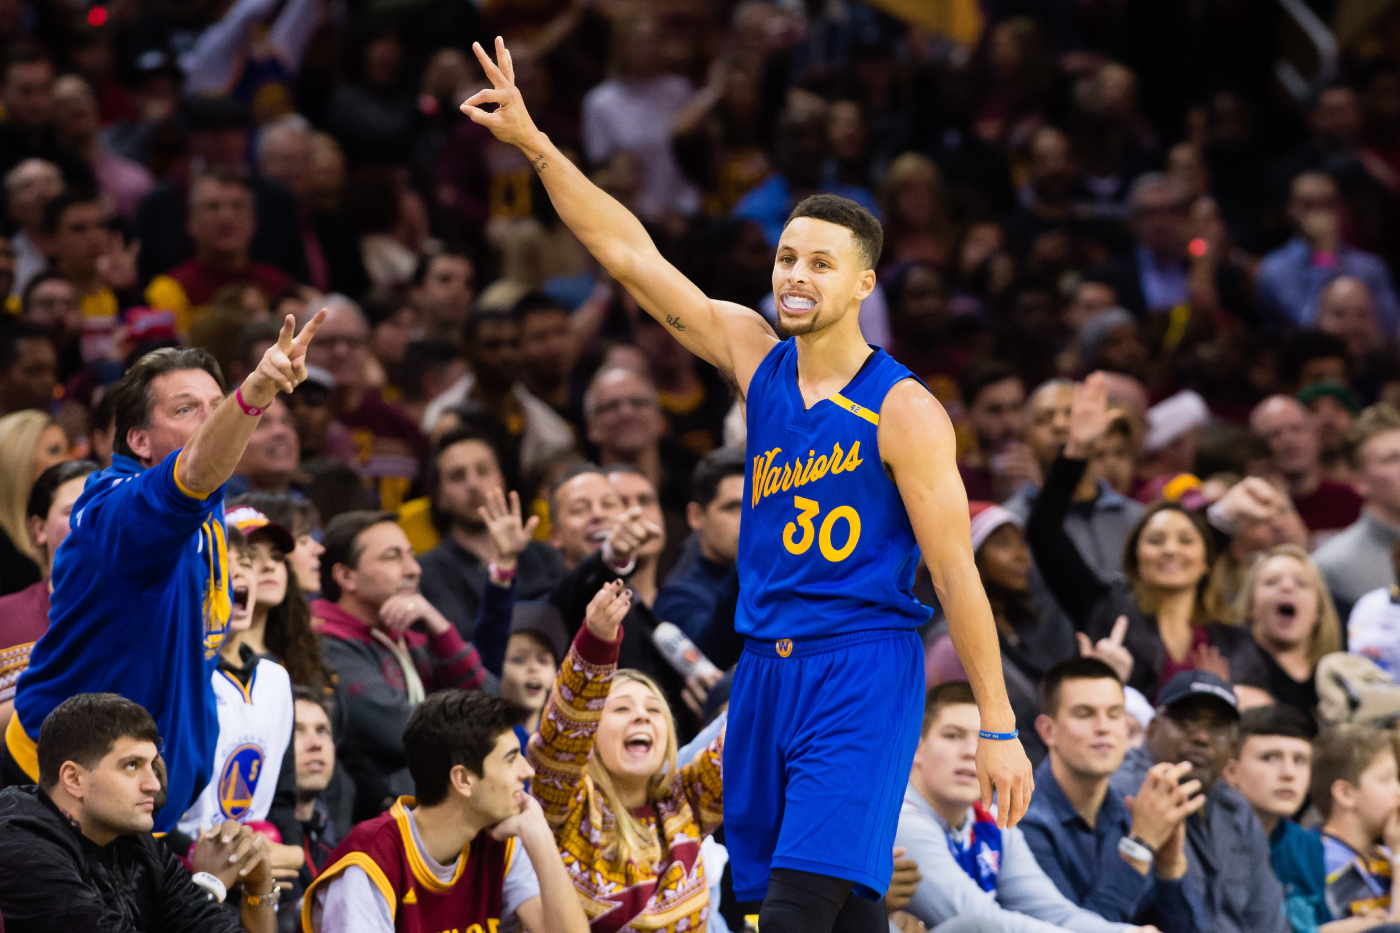 Stephen Curry looks to have a big year for the Golden State Warriors. His former teammate just sent a strong message about Curry, too.